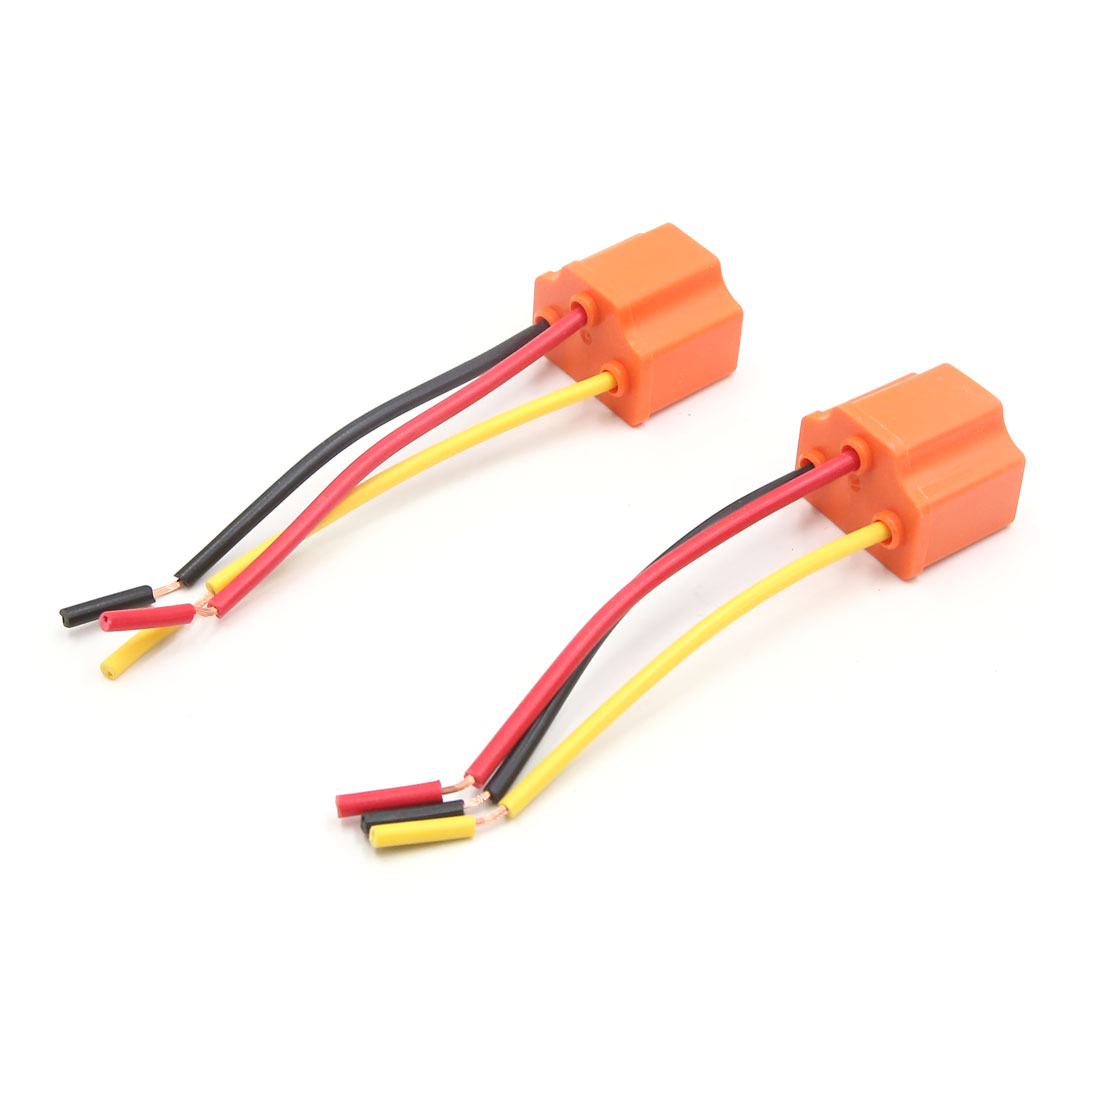 hight resolution of car parts 2 pcs 3 wires h4 fog light extension wire harness socket connector for car